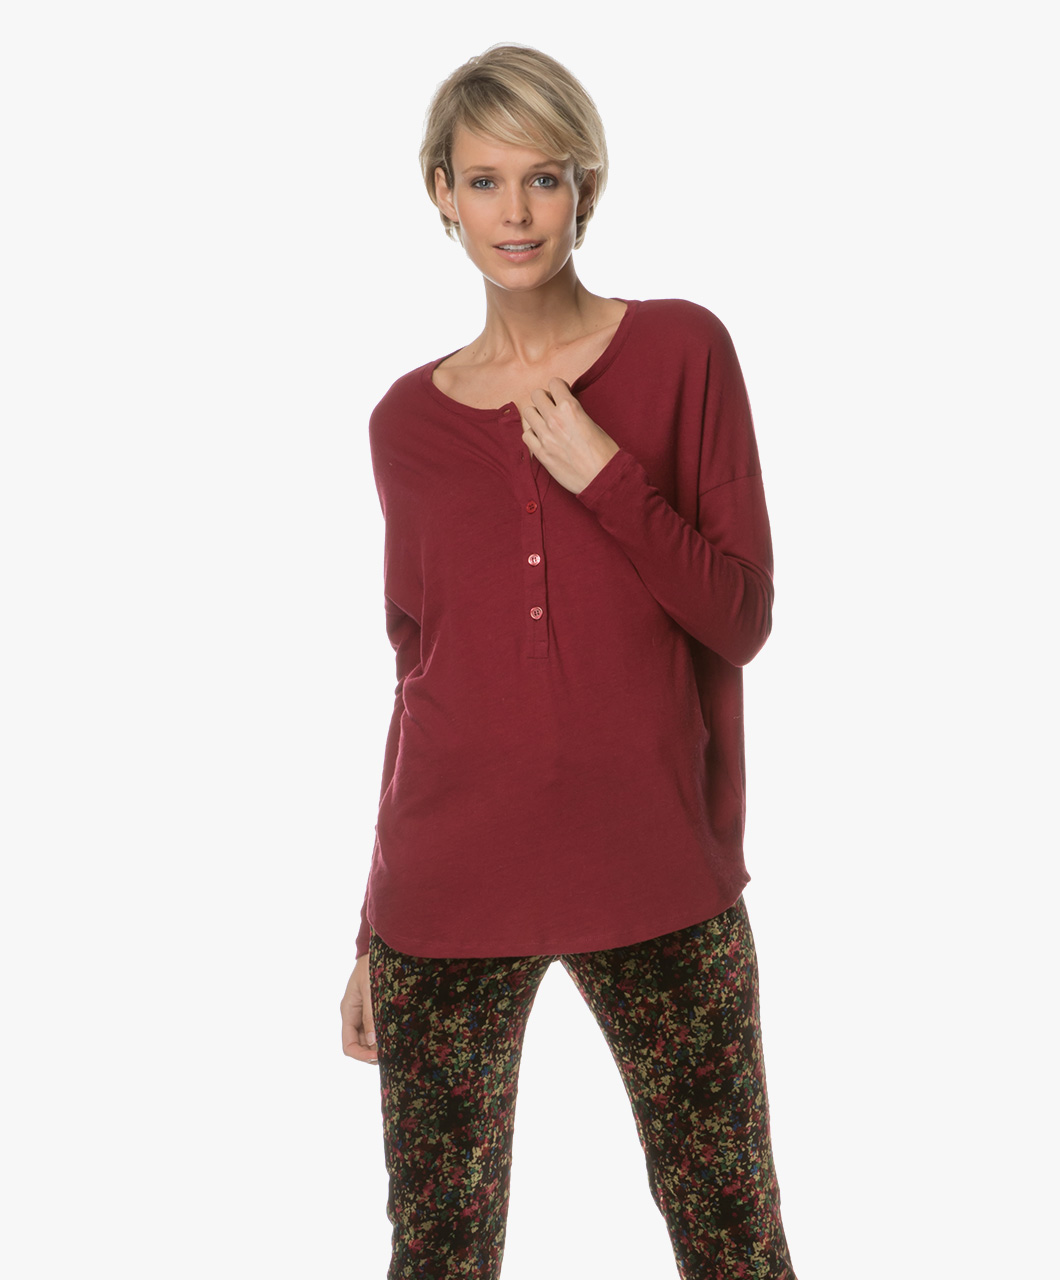 Majestic Henley T Shirt With Cashmere Grenat H17 05 31 854